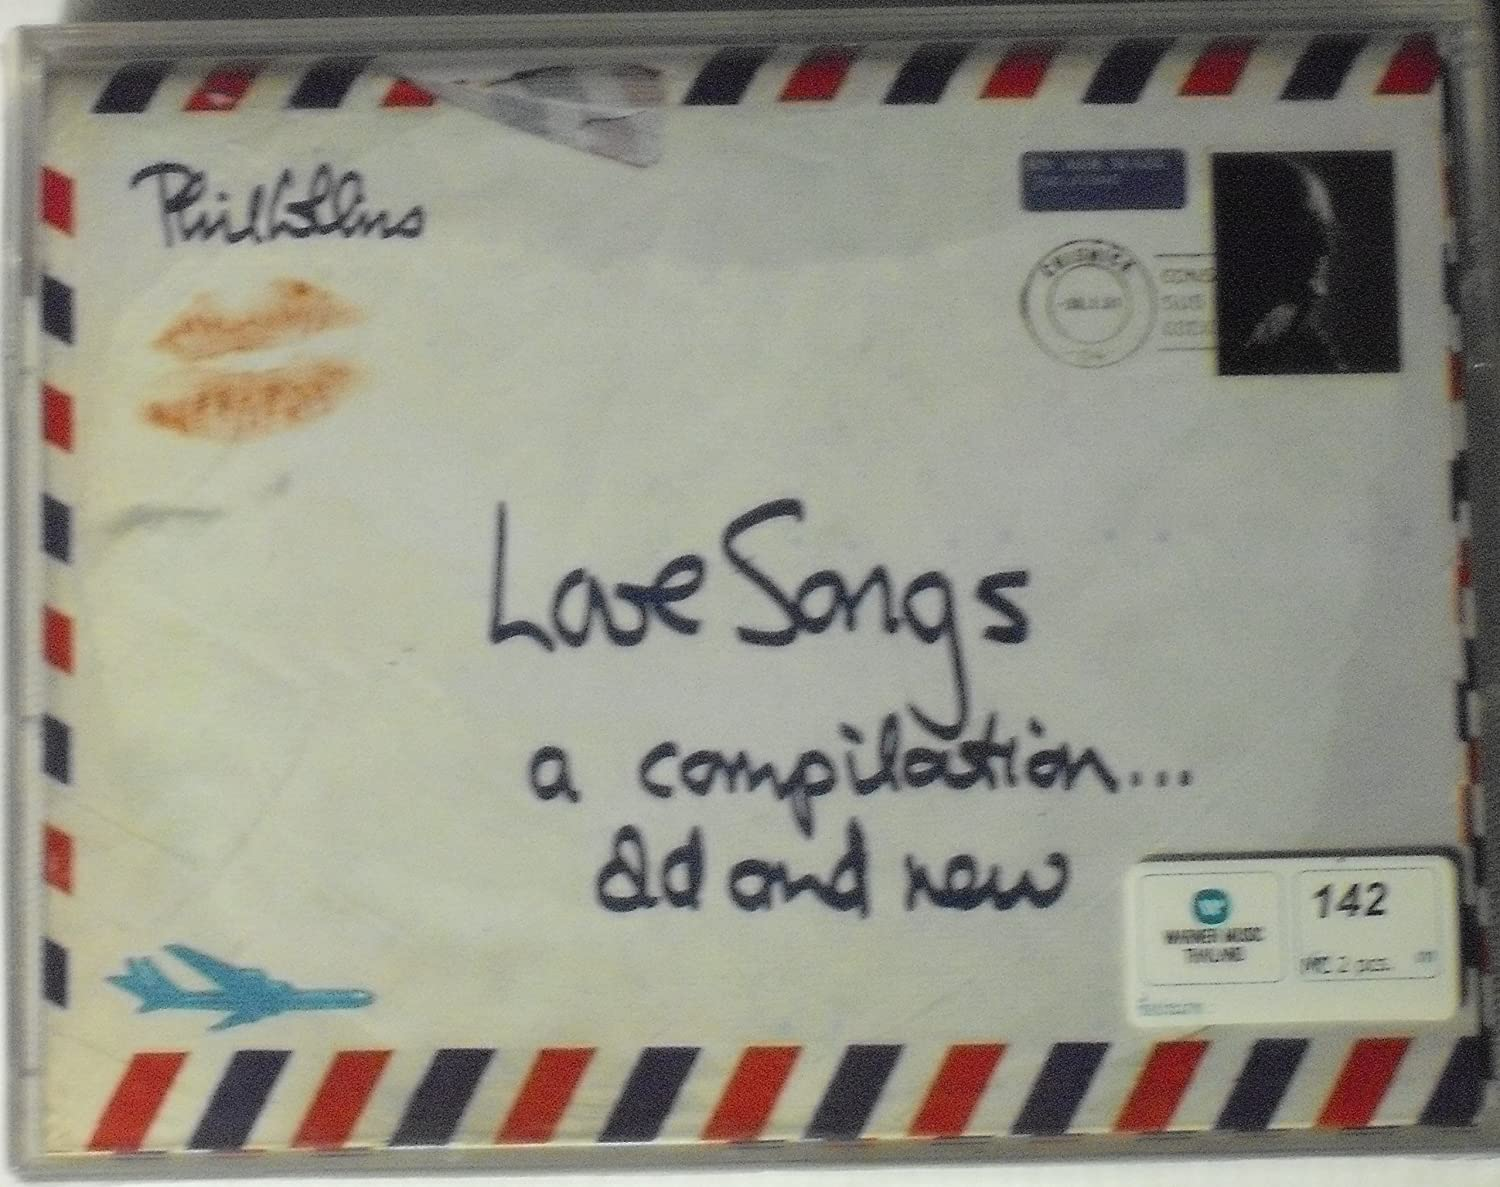 Love Songs A Compilation Old and New